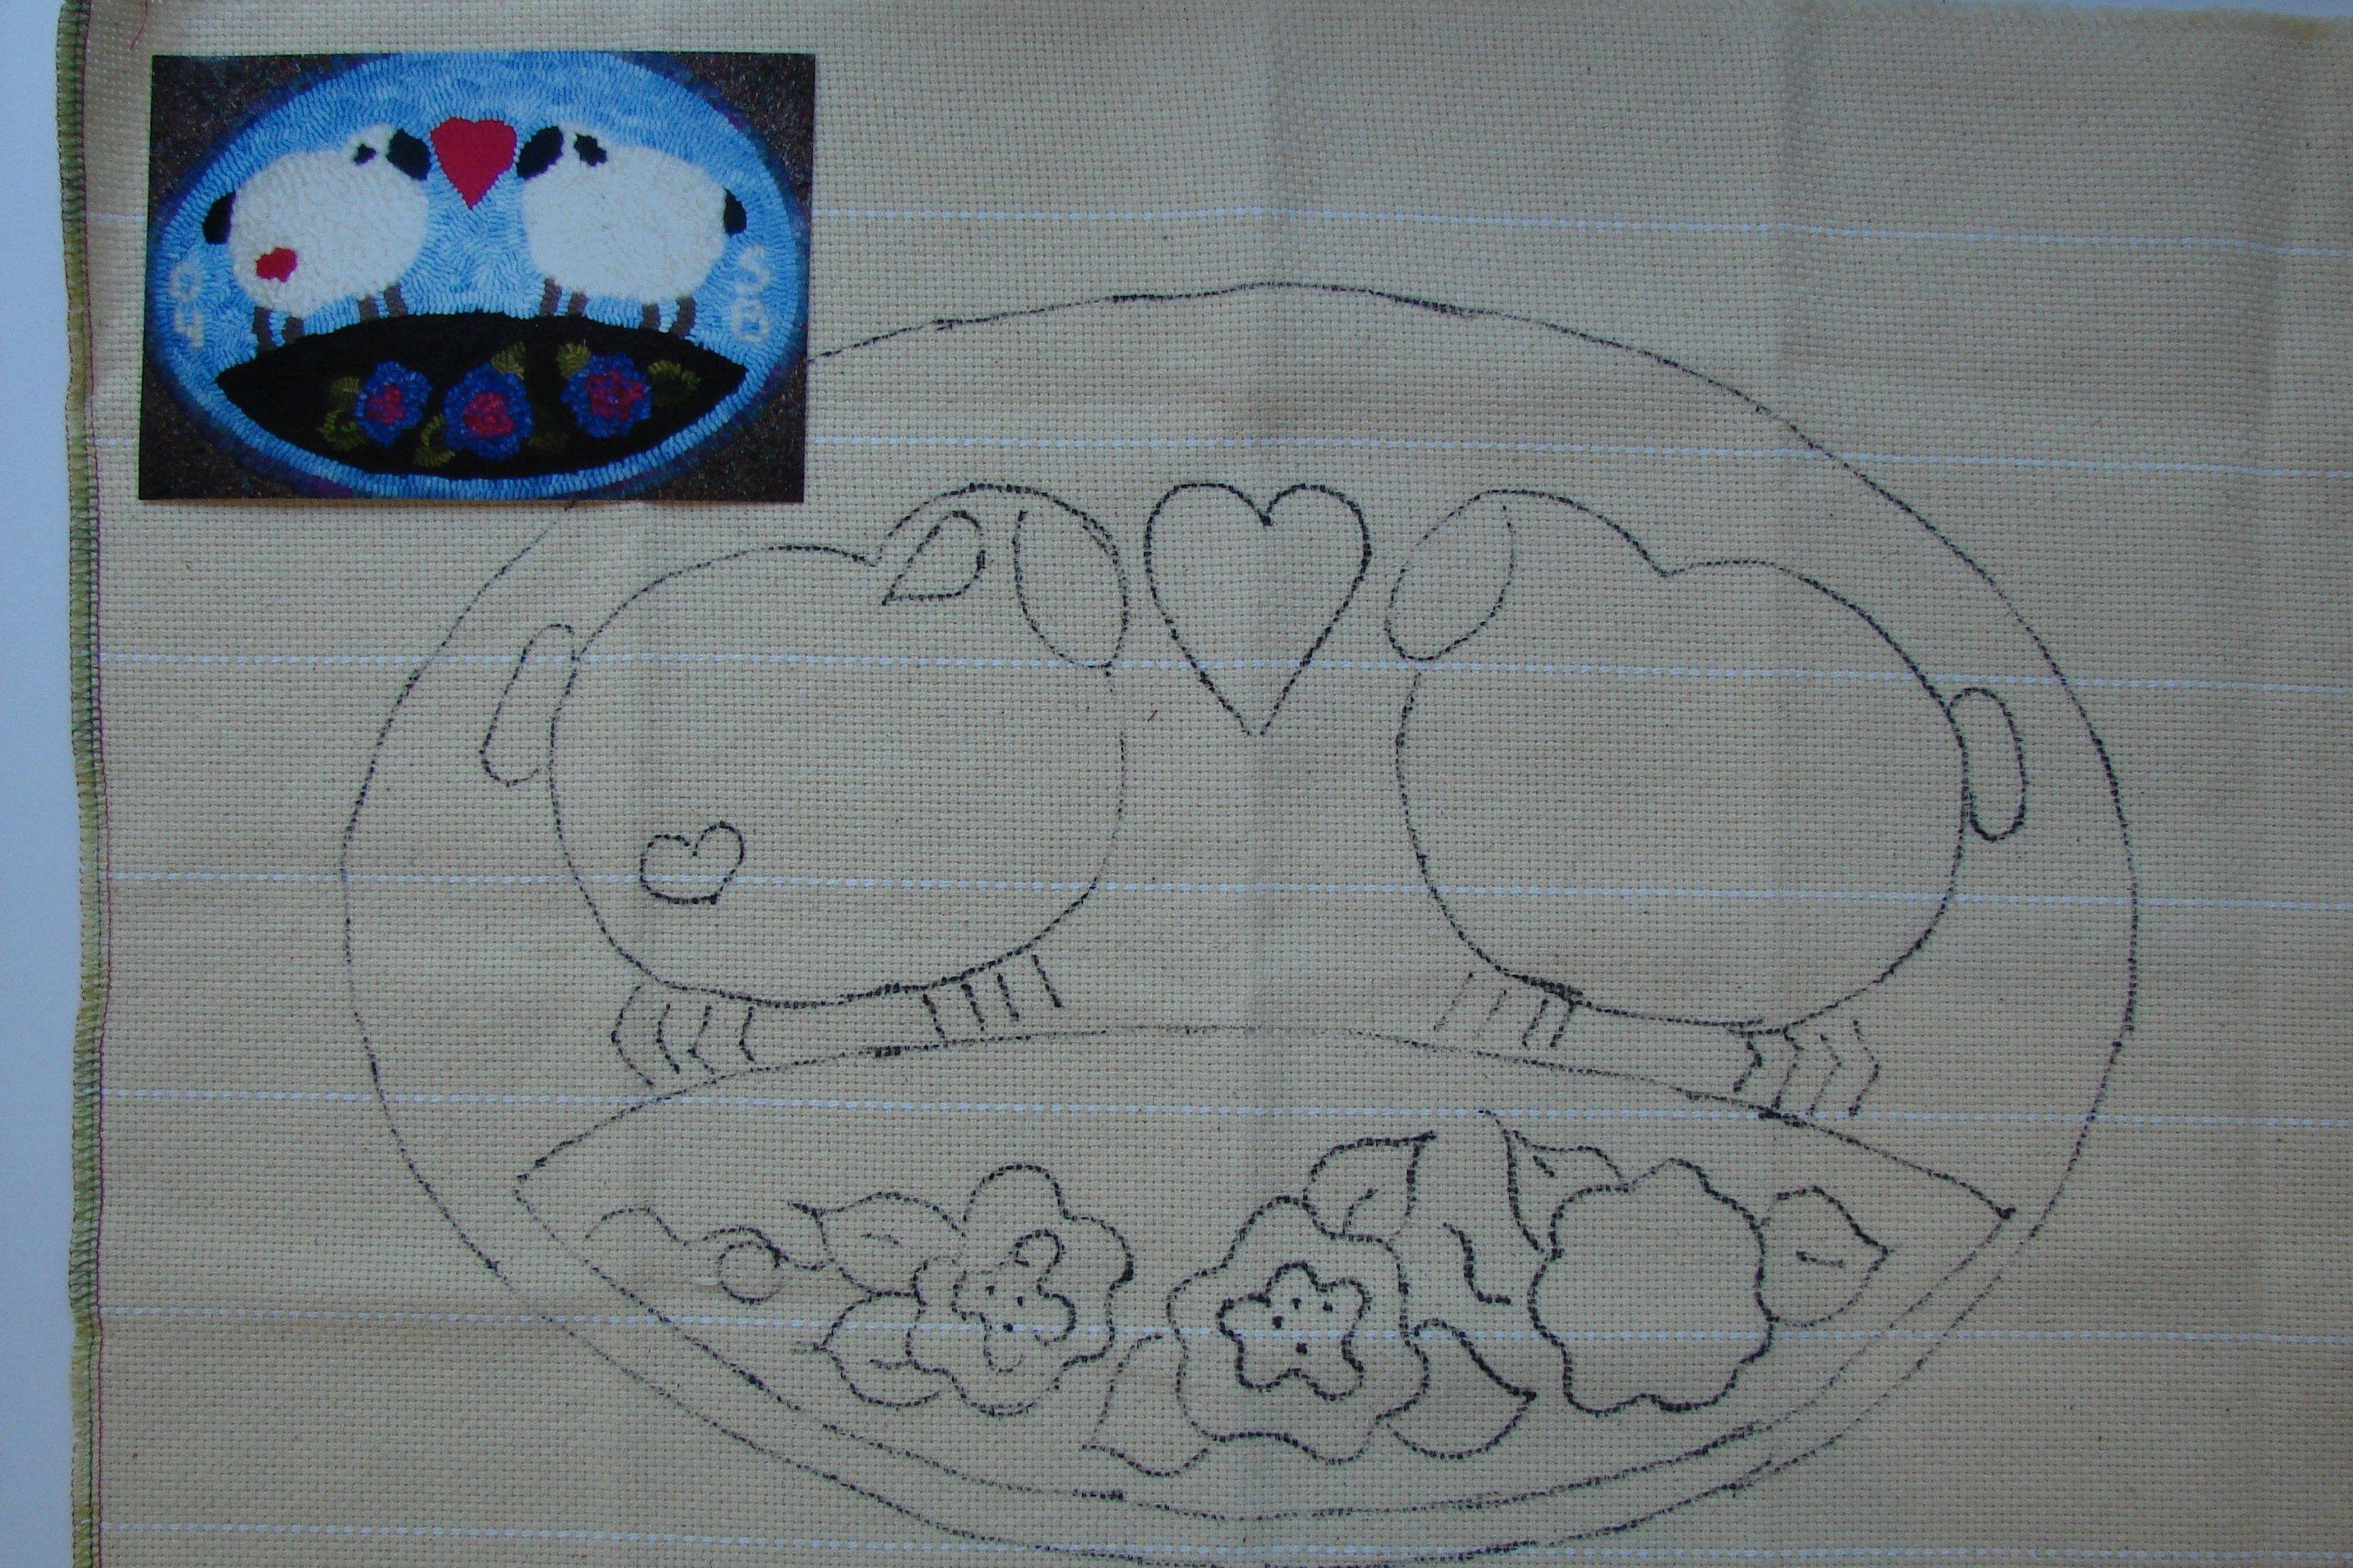 Rug Hooking Or Punch Needle Pattern On Monks Cloth Adaptation Of Applique Pattern Love Ewe Sheep